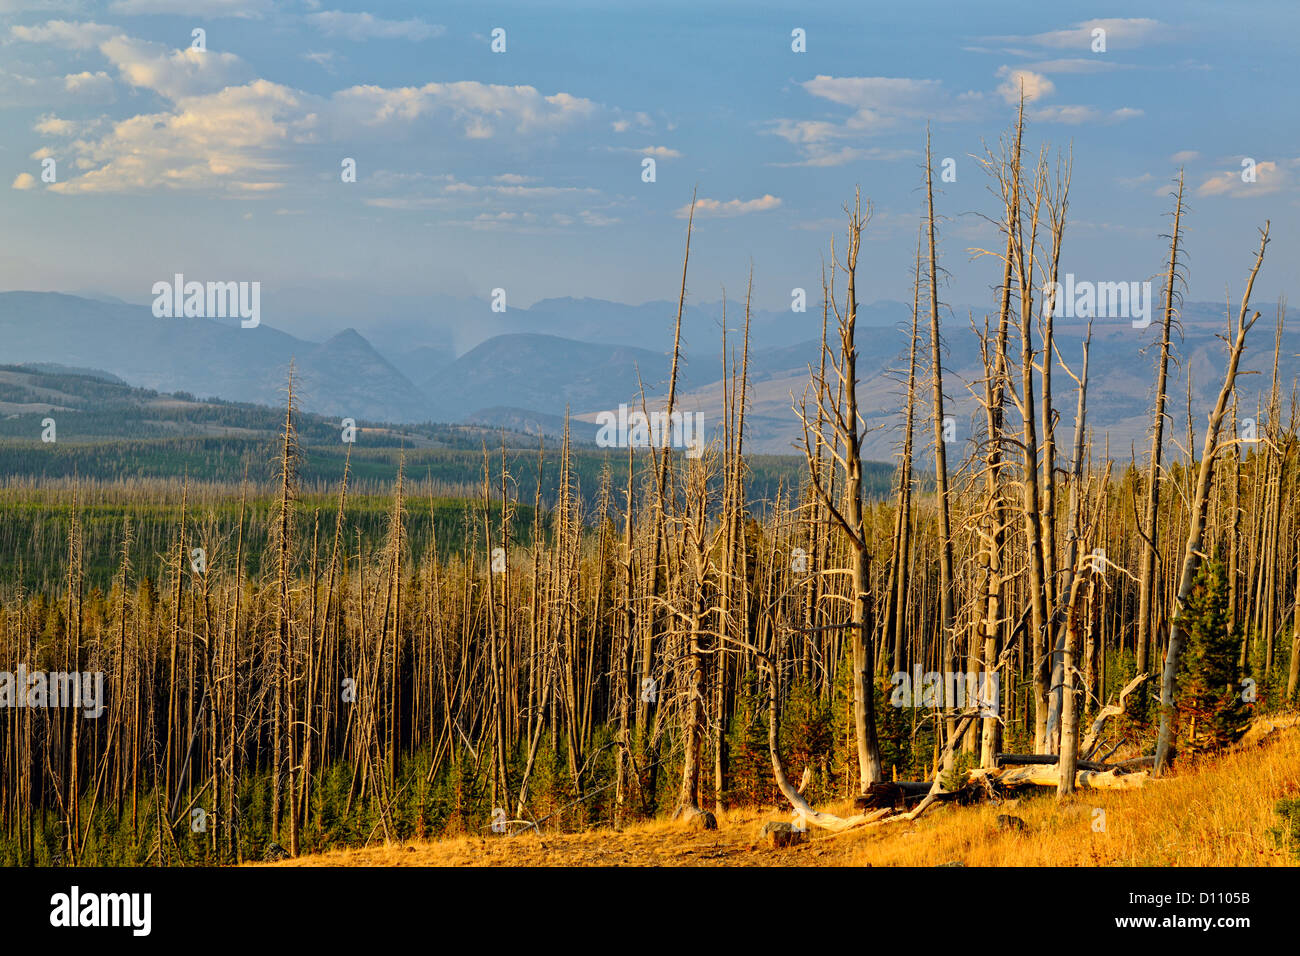 Dead tree snags killed by a forest fire and regenerating forest, Yellowstone NP, Wyoming, USA - Stock Image